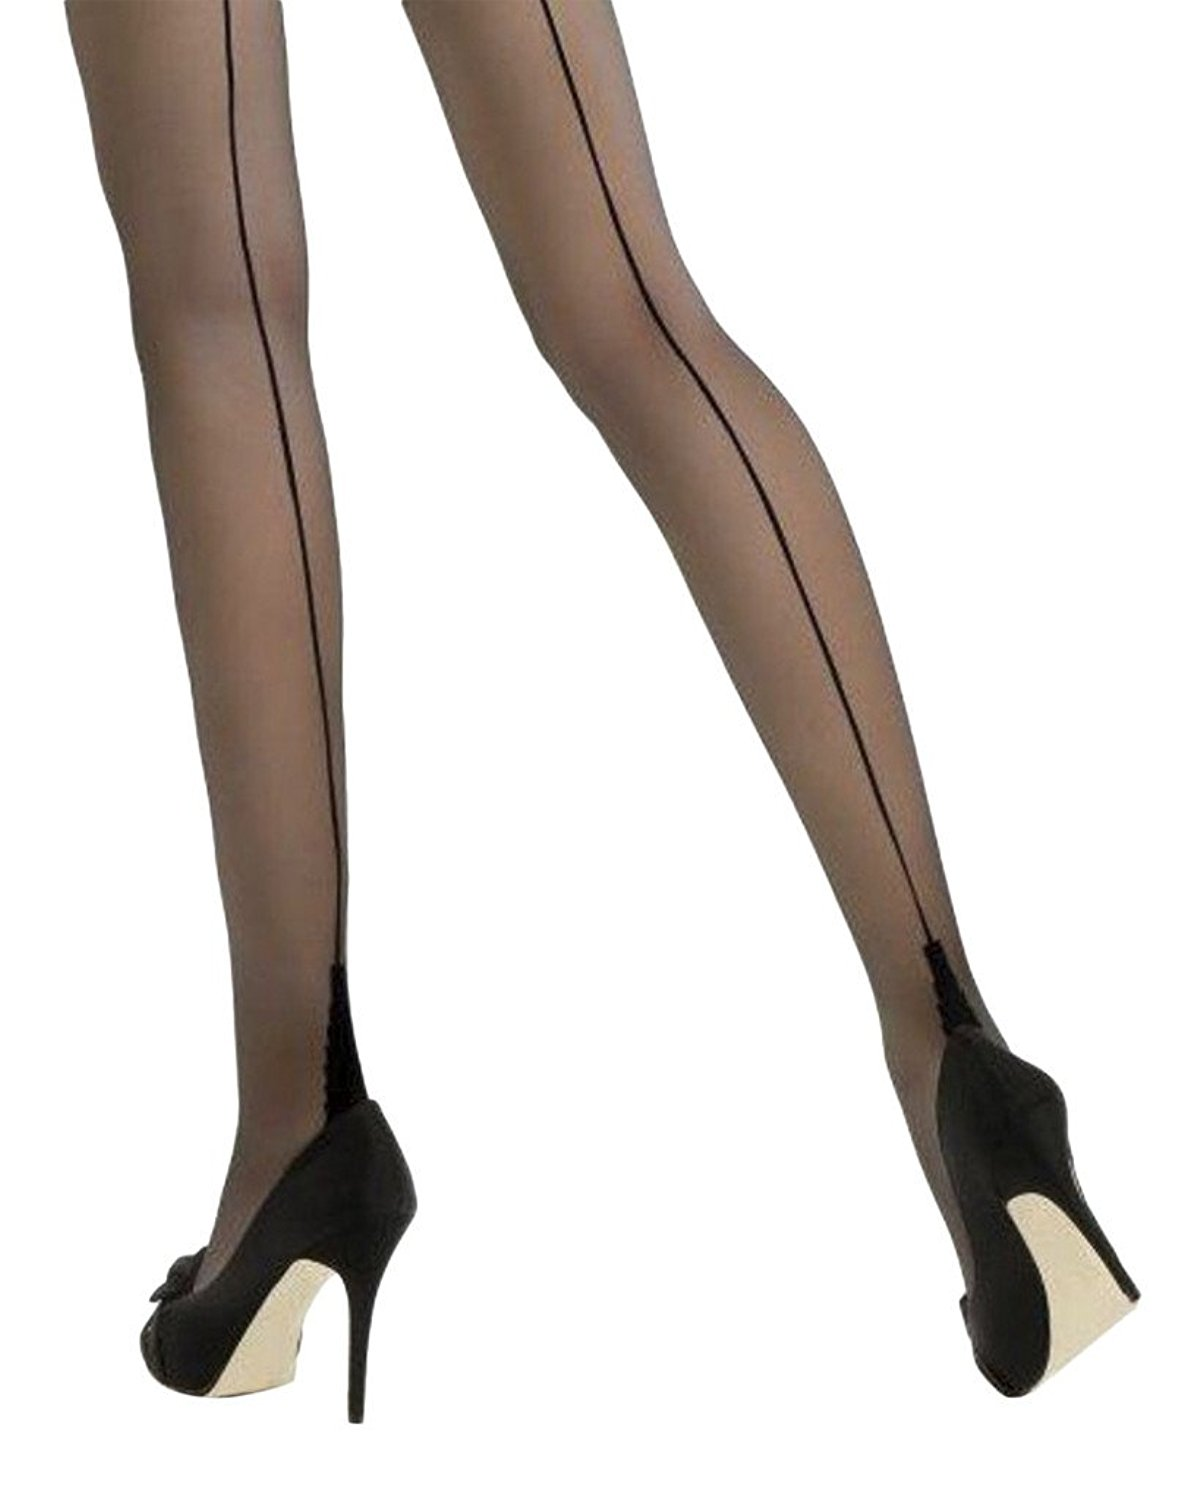 Black Tights Children Girls Pamela Mann 40 Denier Footed Opaque Tights